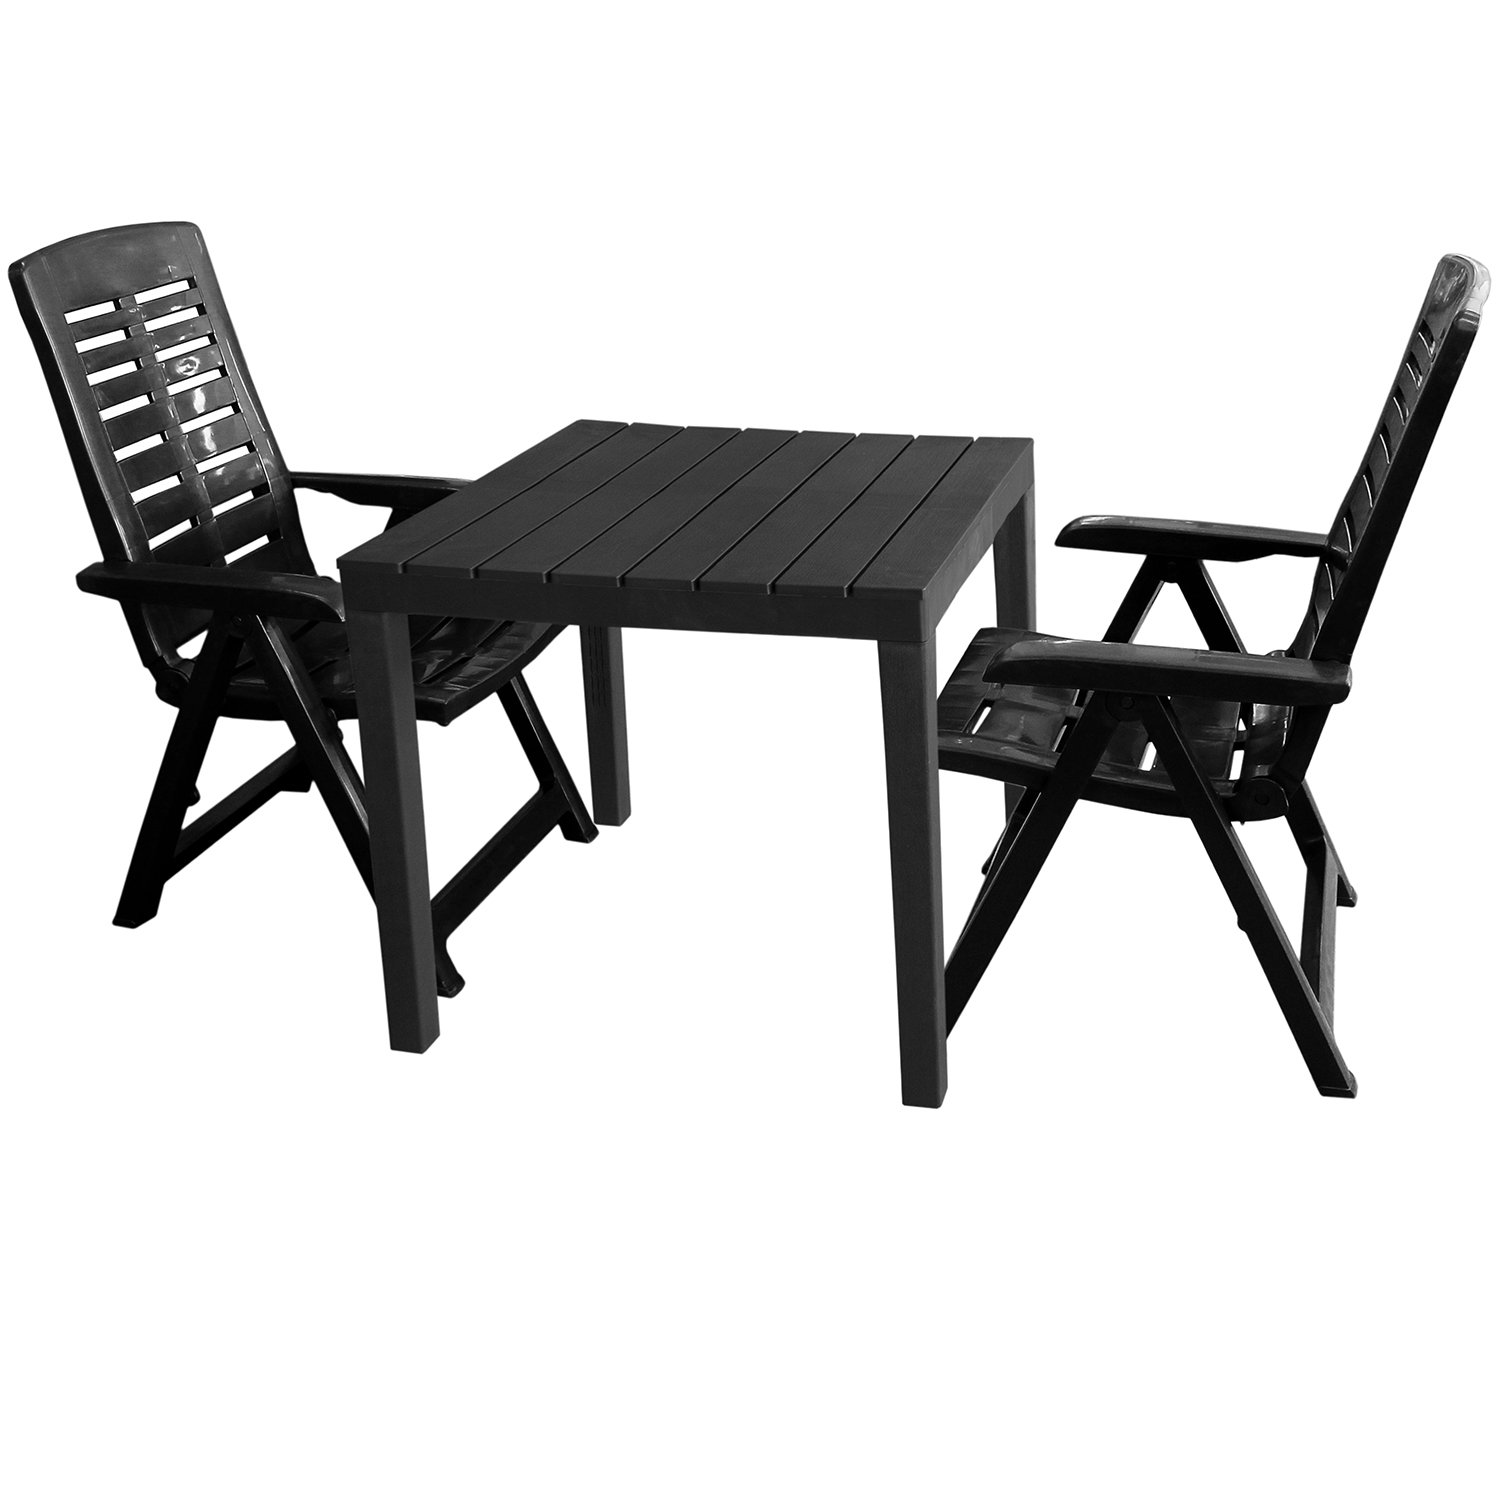 gartenm bel set gartentisch bali 78x78cm 2x klappsessel yuma anthrazit garten bistro und. Black Bedroom Furniture Sets. Home Design Ideas